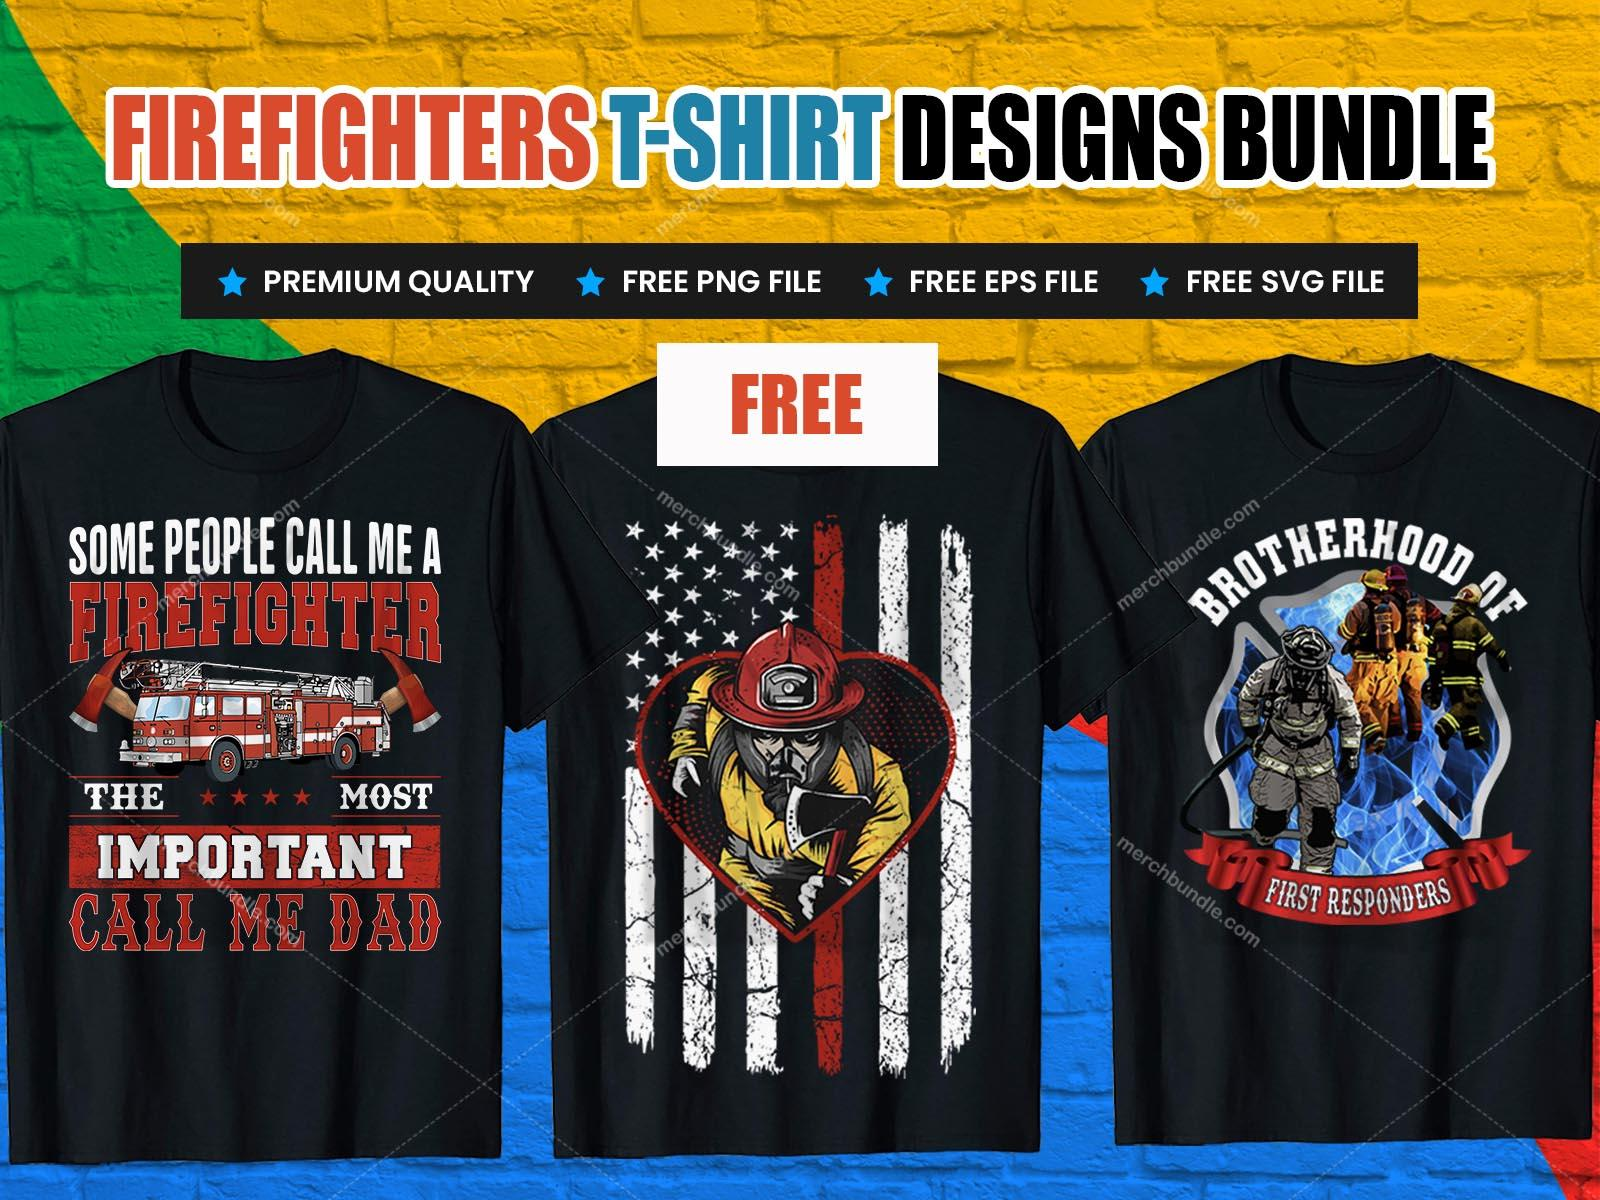 Free Firefighter tshirt